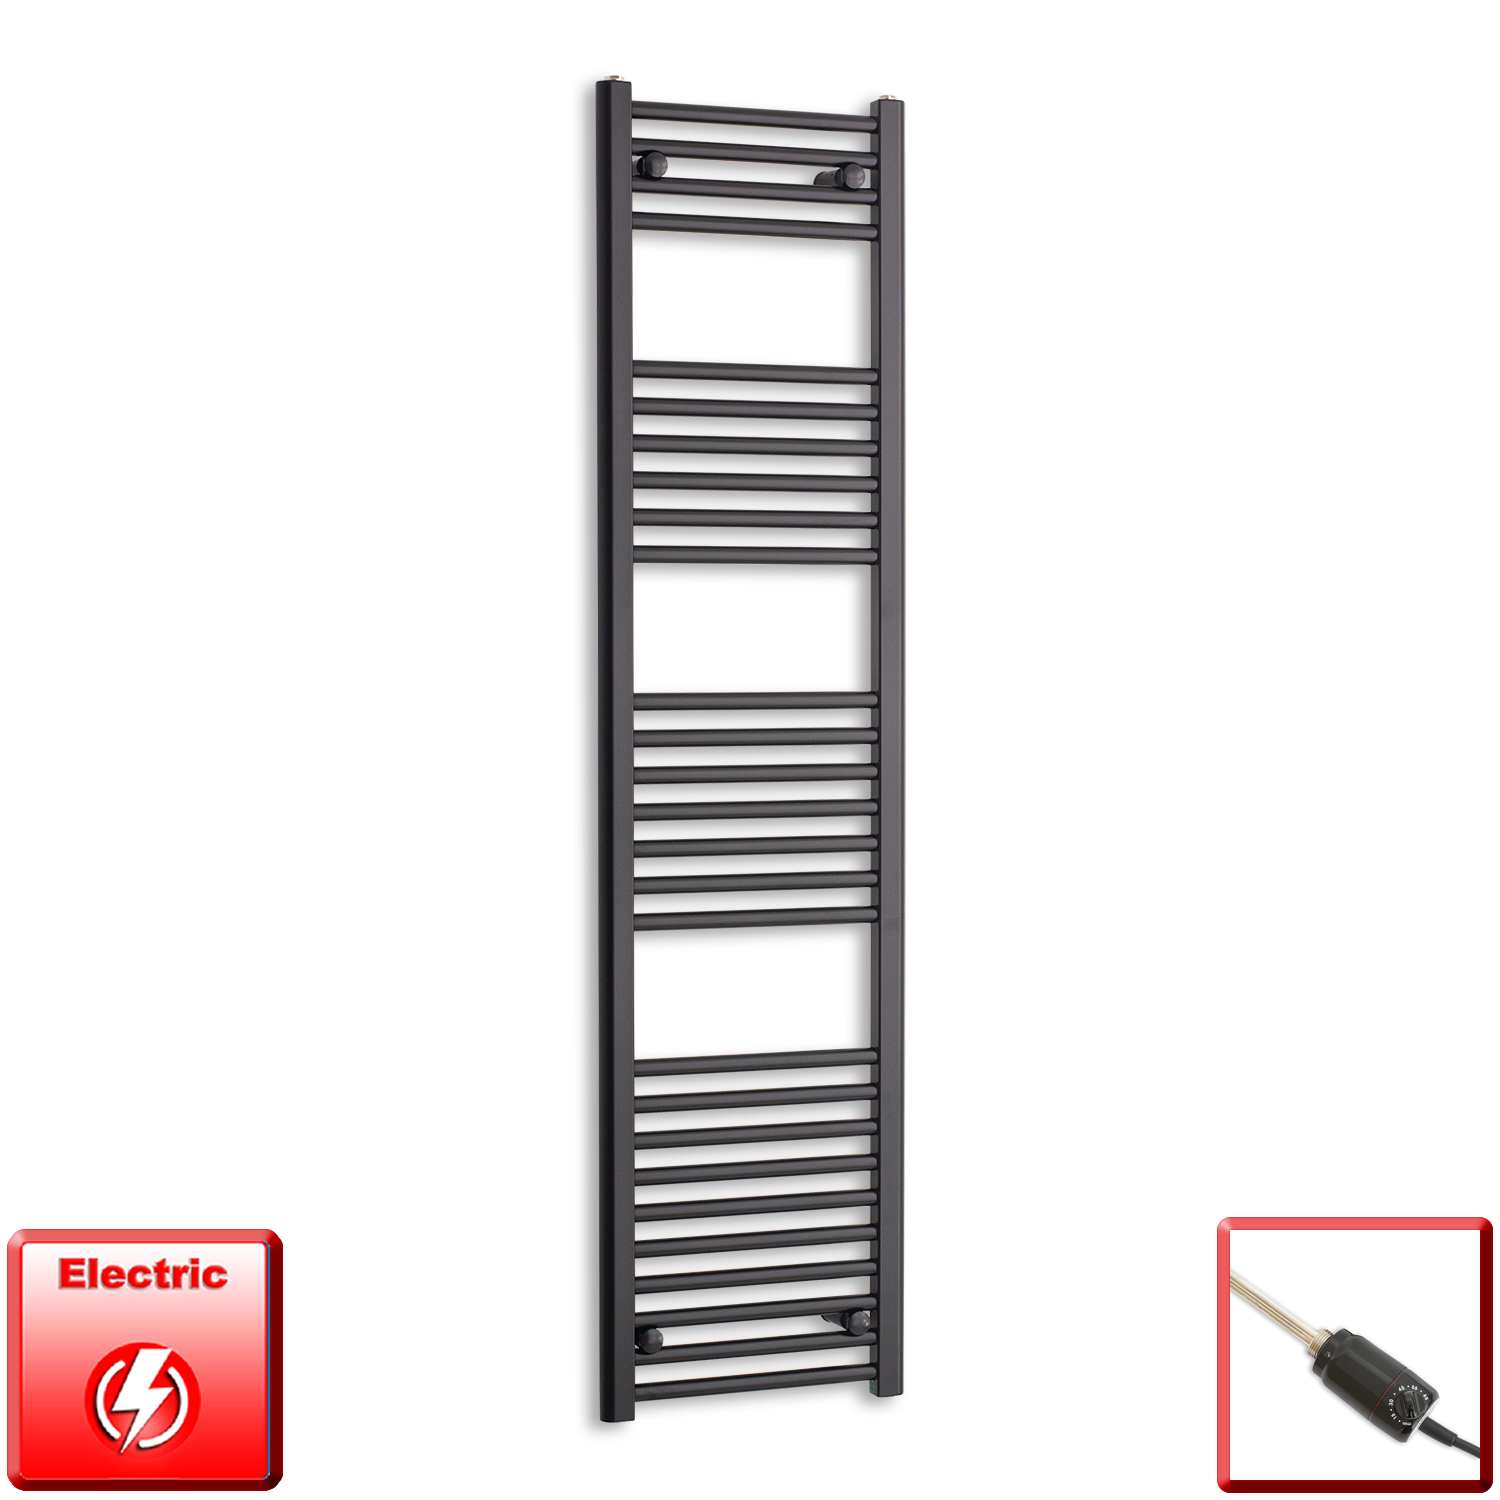 400mm Wide 1600mm High Pre-Filled Black Electric Towel Rail Radiator With Thermostatic GT Element